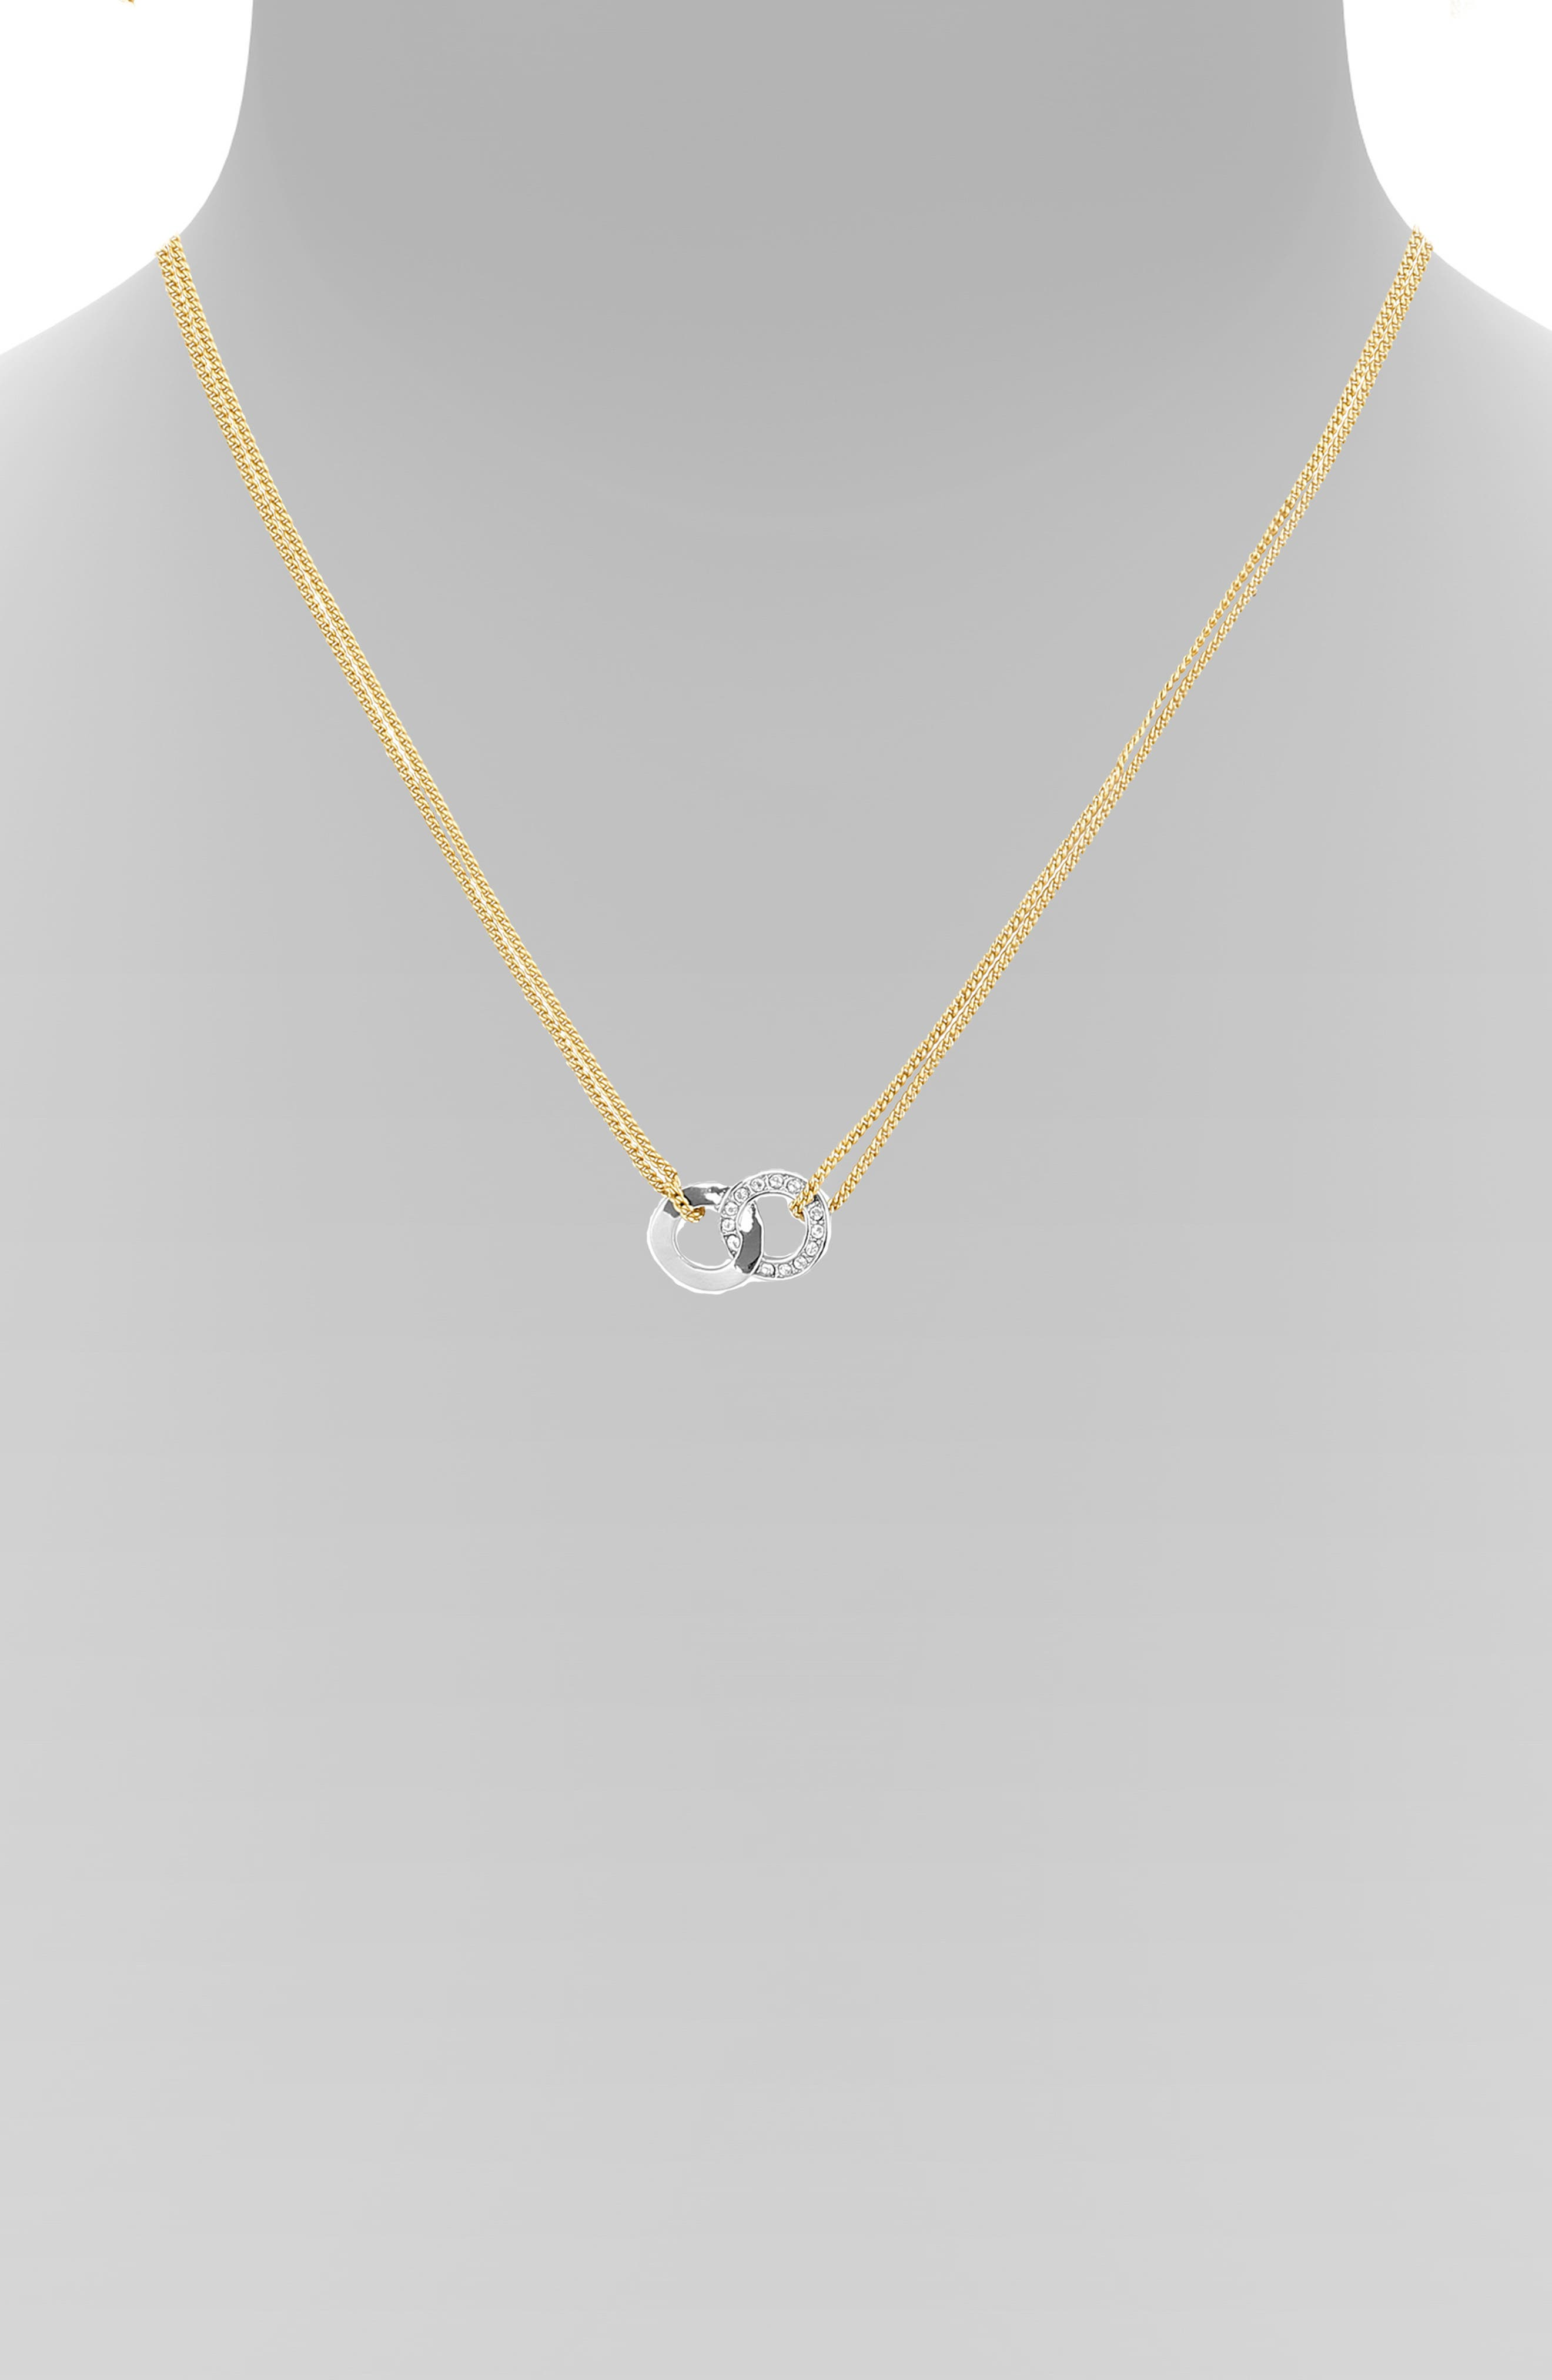 ADORE,                             Interlocking Ring Necklace,                             Alternate thumbnail 3, color,                             GOLD/ SILVER